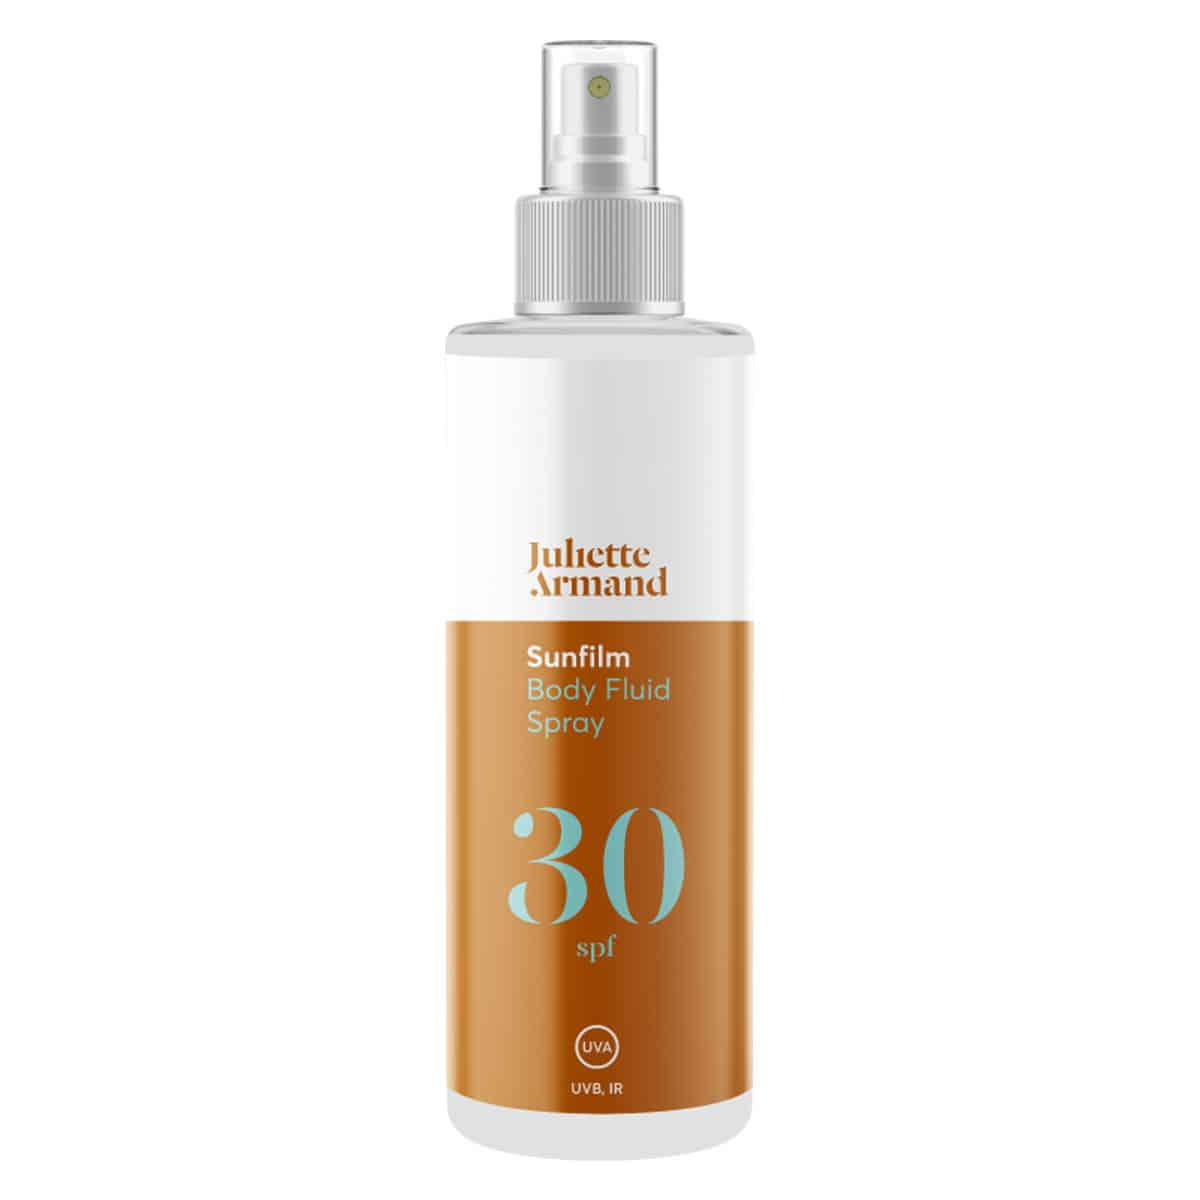 Sunfilm Body Fluid Spray SPF30